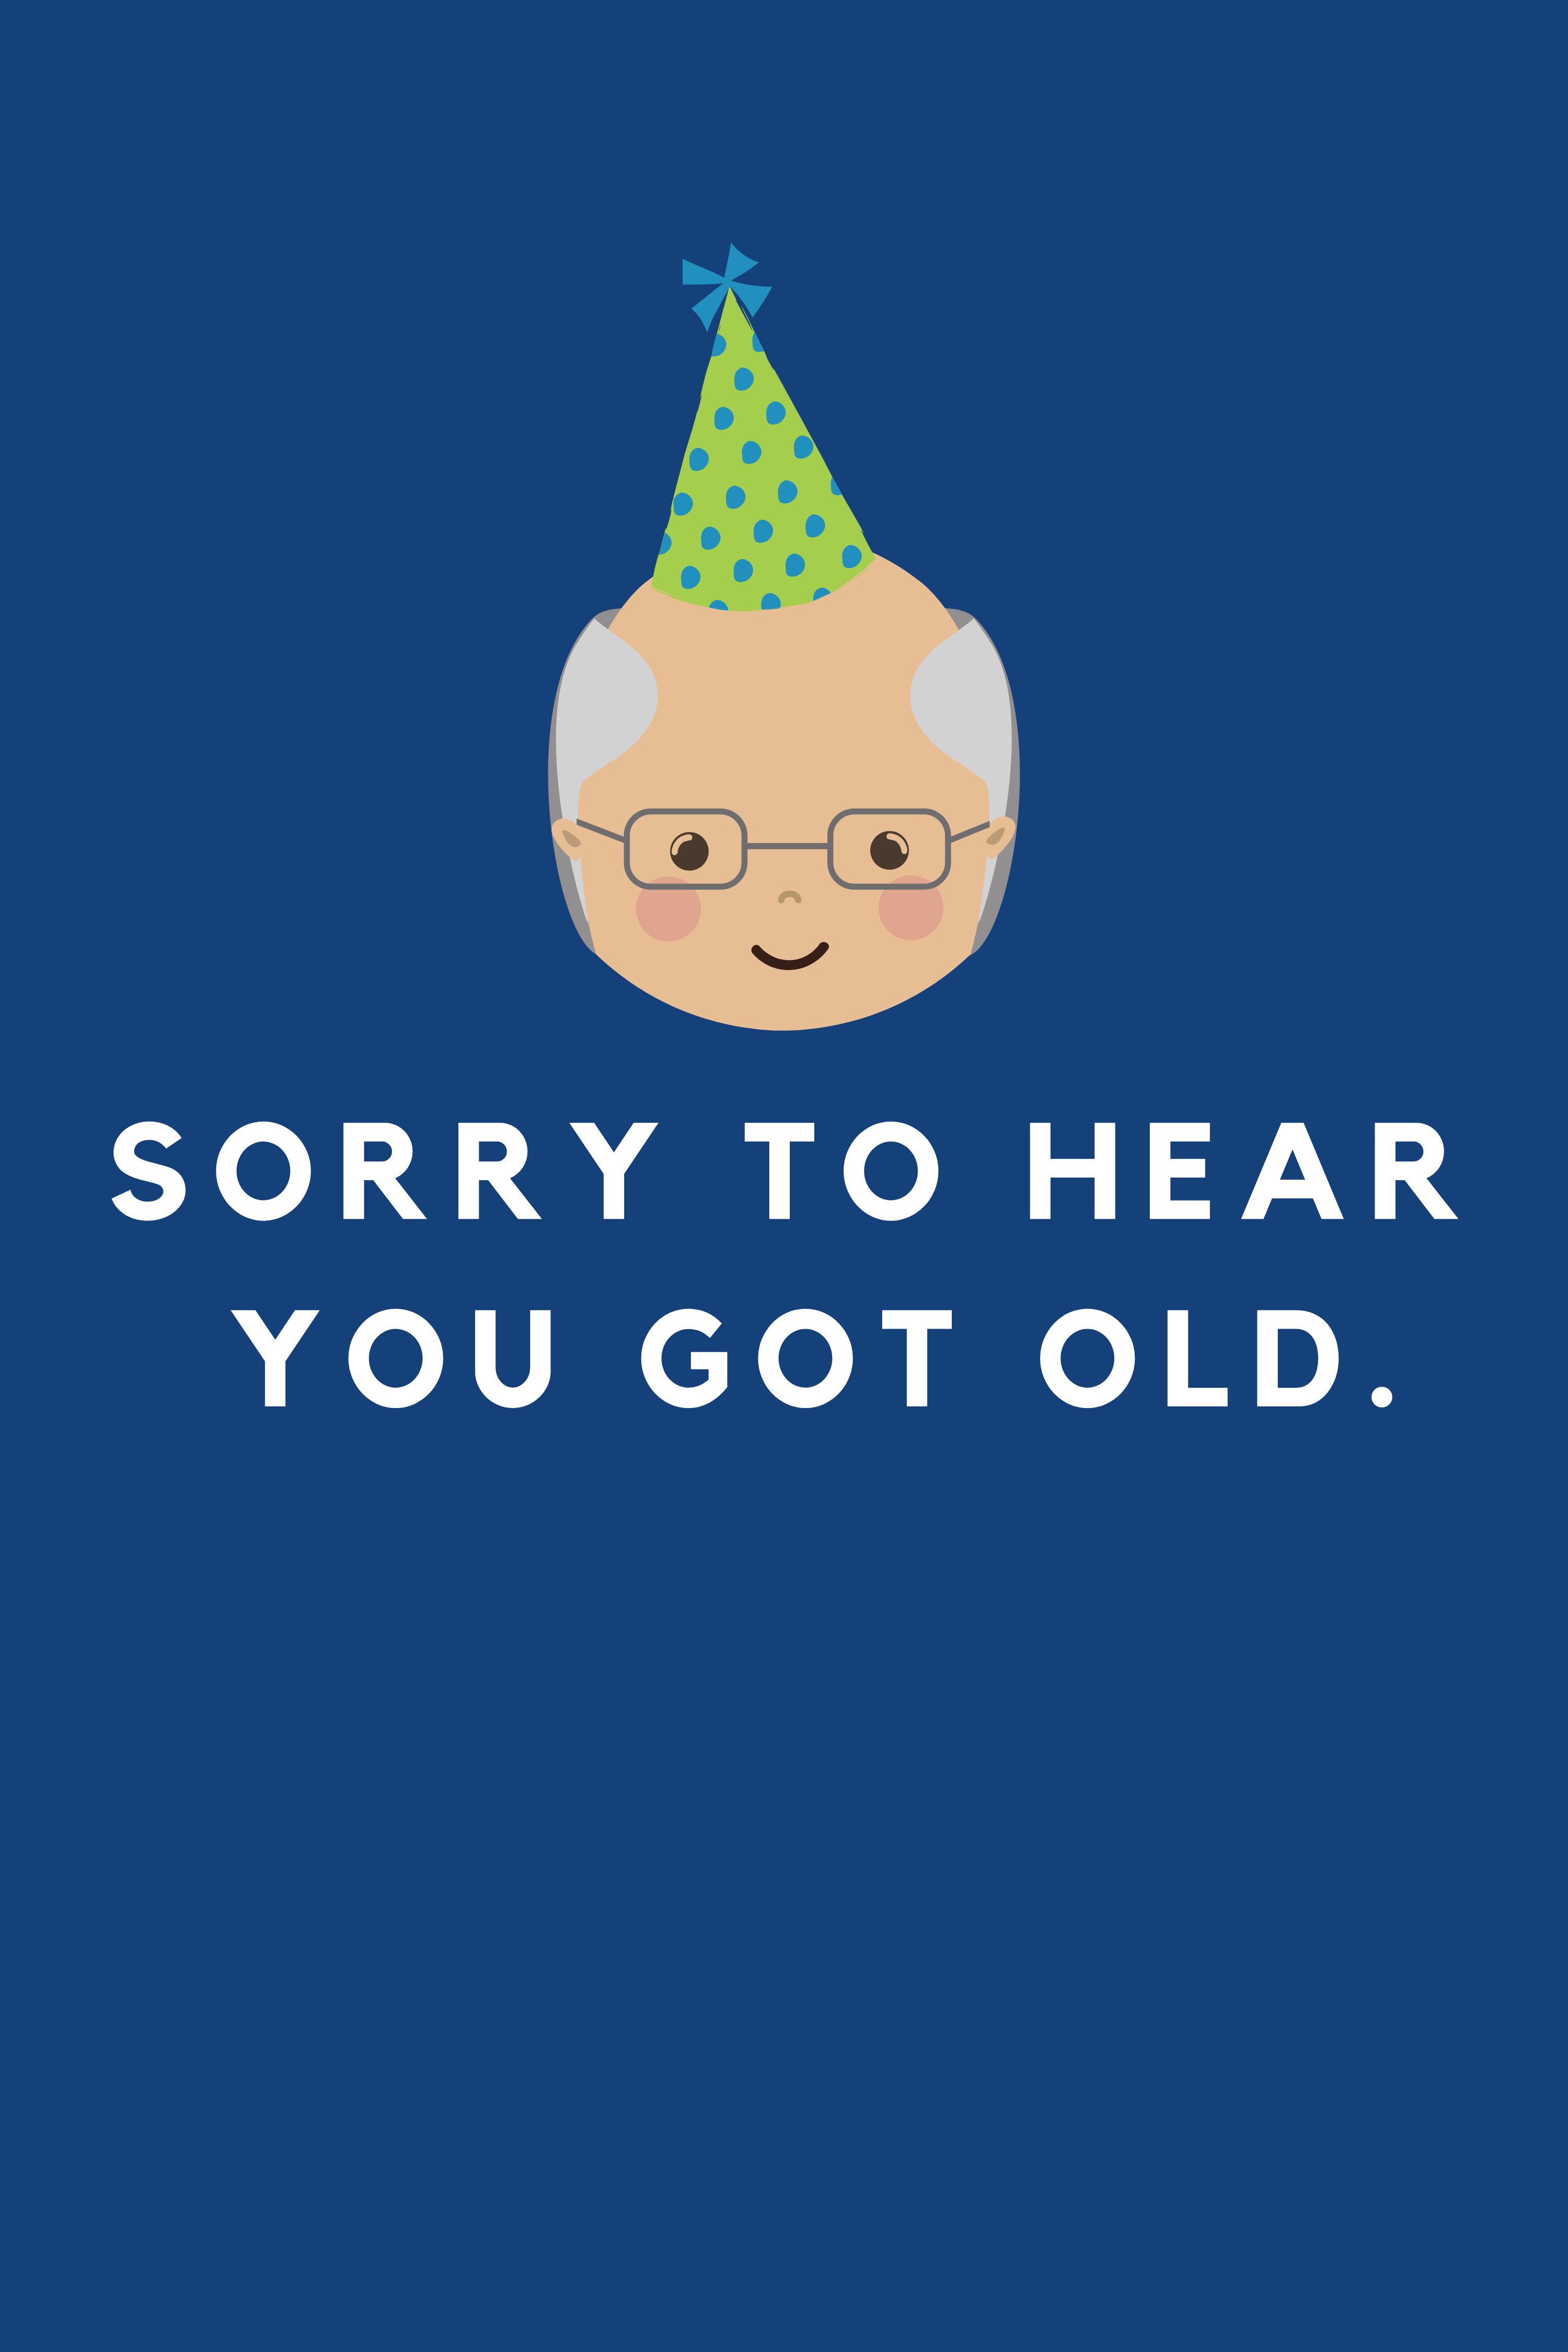 Funny Happy Birthday Quotes for Him Your Dad Will Love